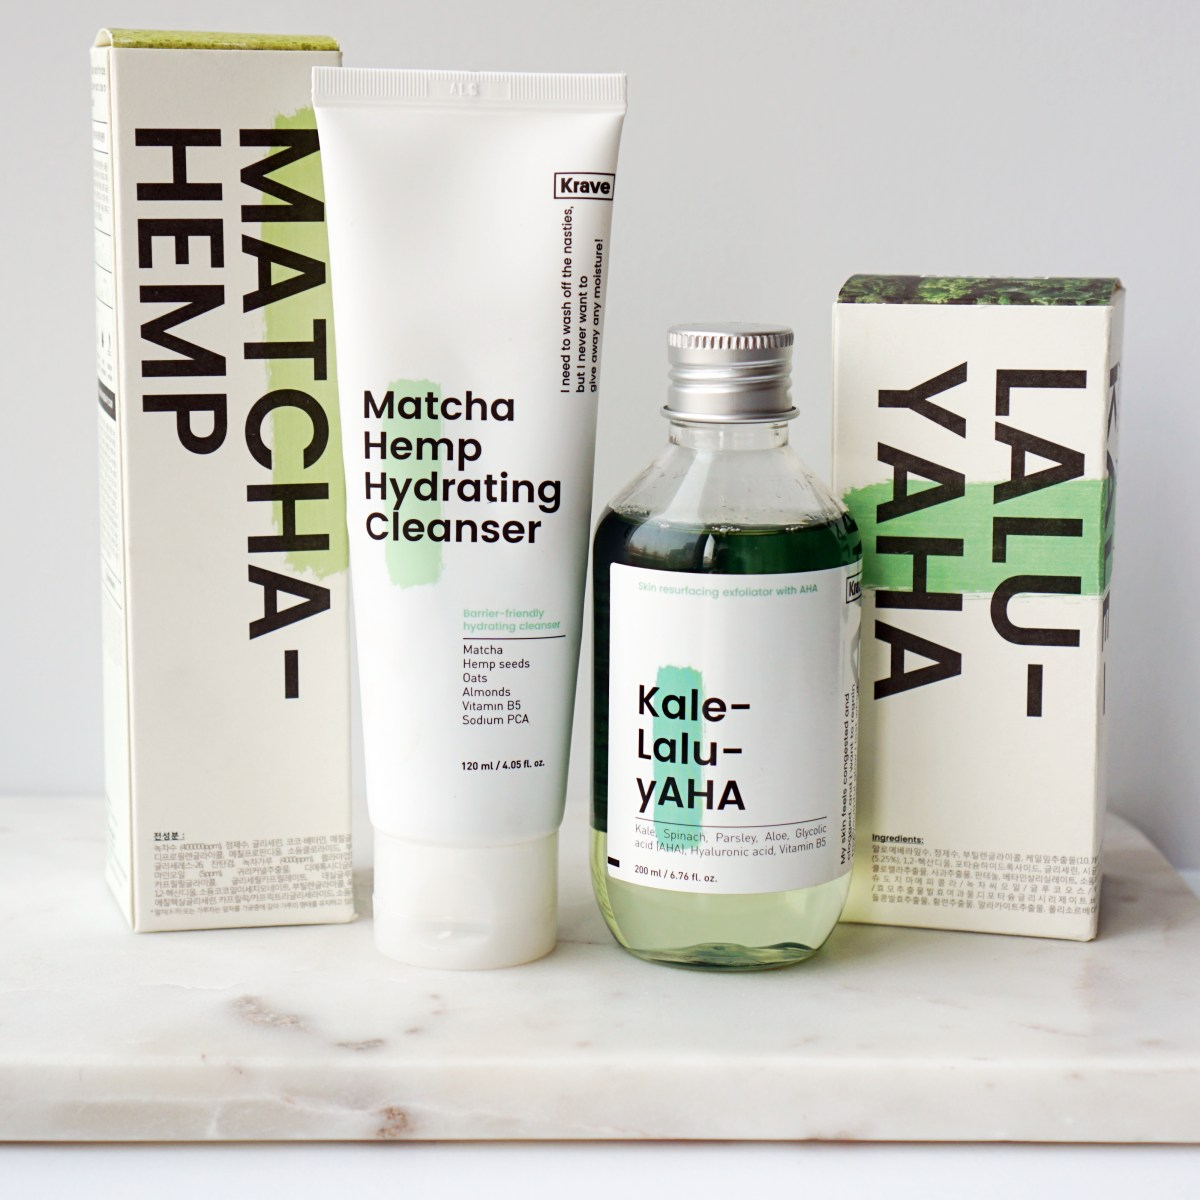 Krave Review - Kale-Lalu-yAHA & Matcha Hemp Cleanser